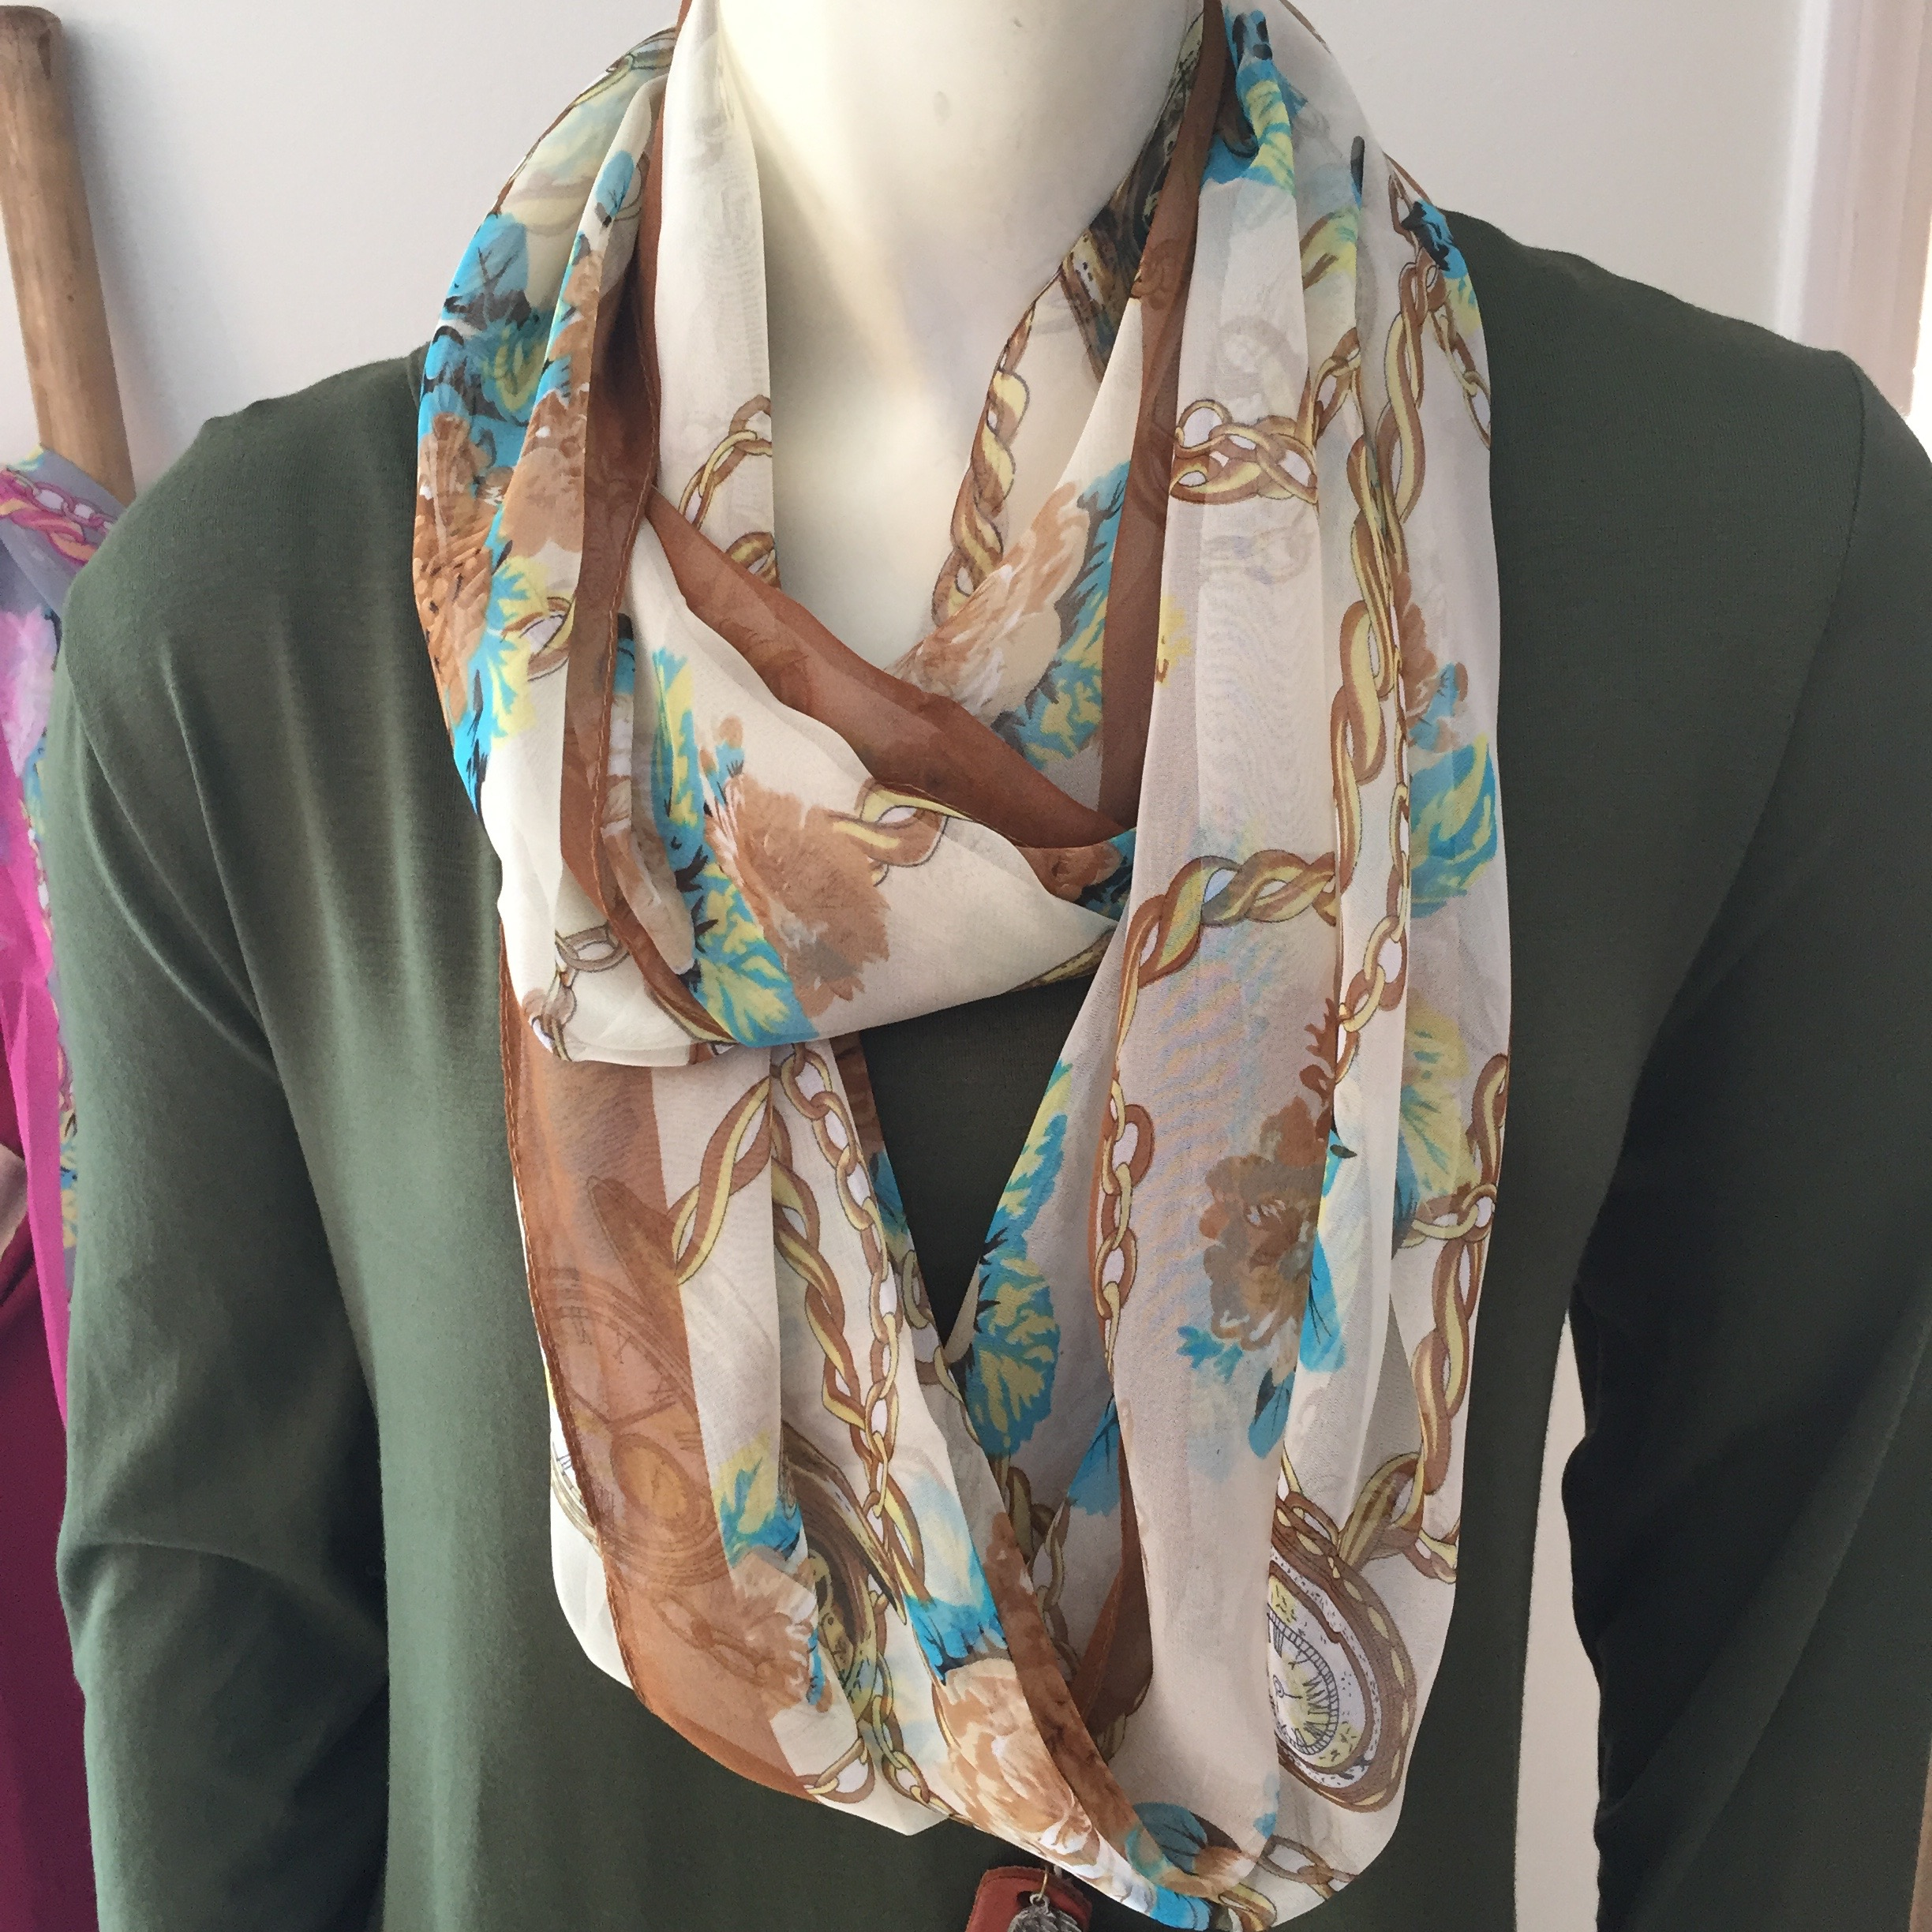 Watch and Chain Print Infinity Scarf